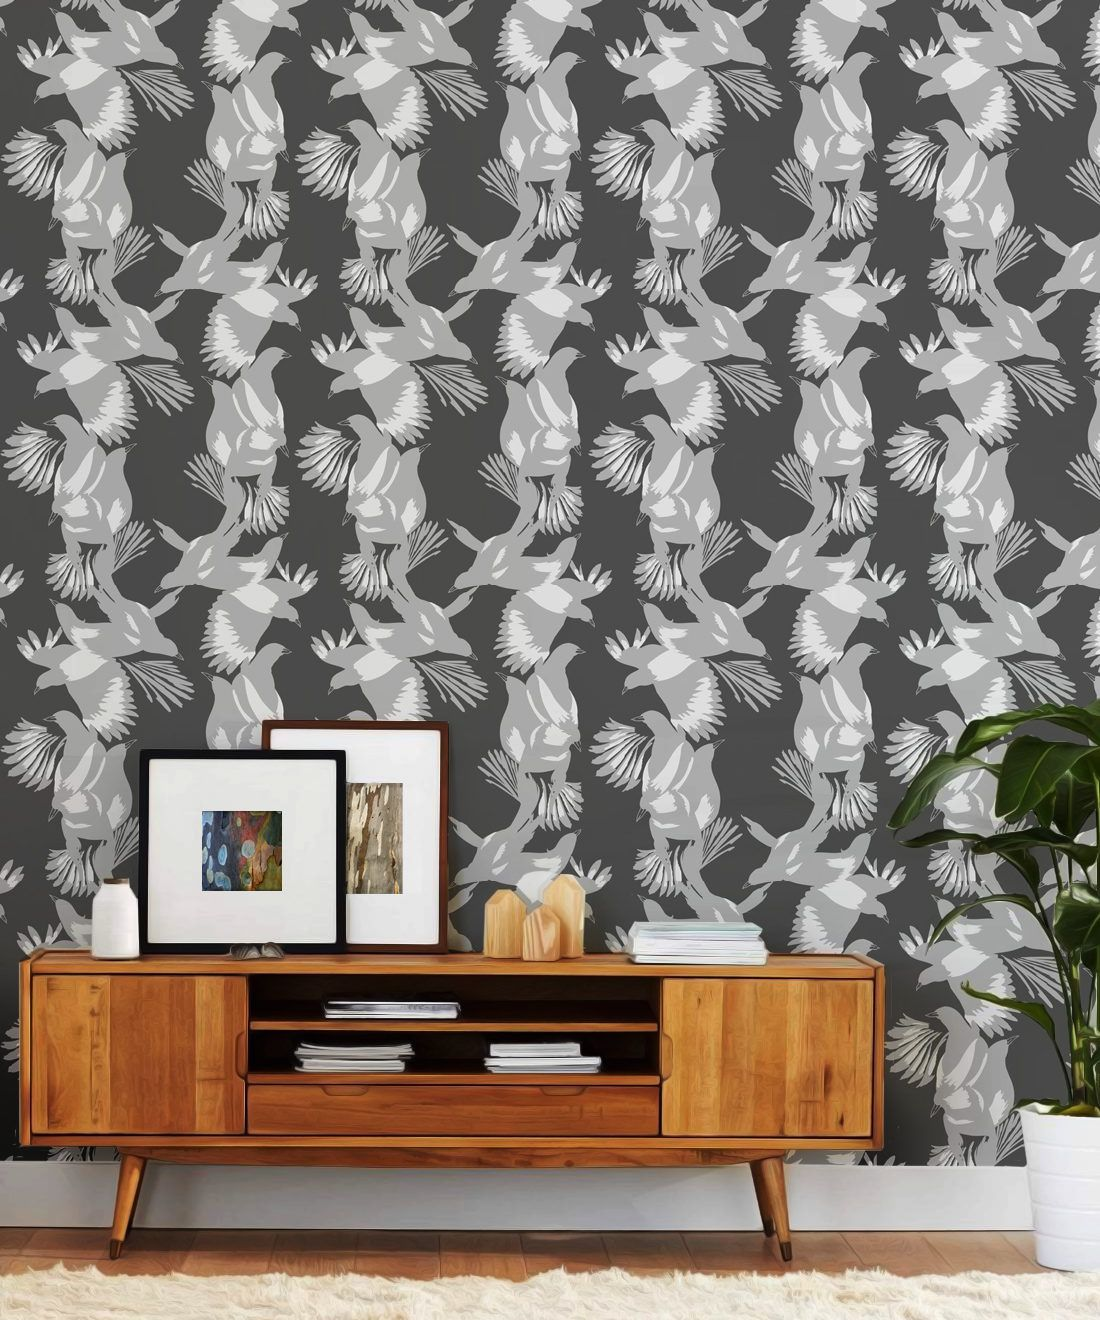 Magpie Wallpaper • Milton & King • Kingdom Home • Bird Wallpaper • Insitu Swatch